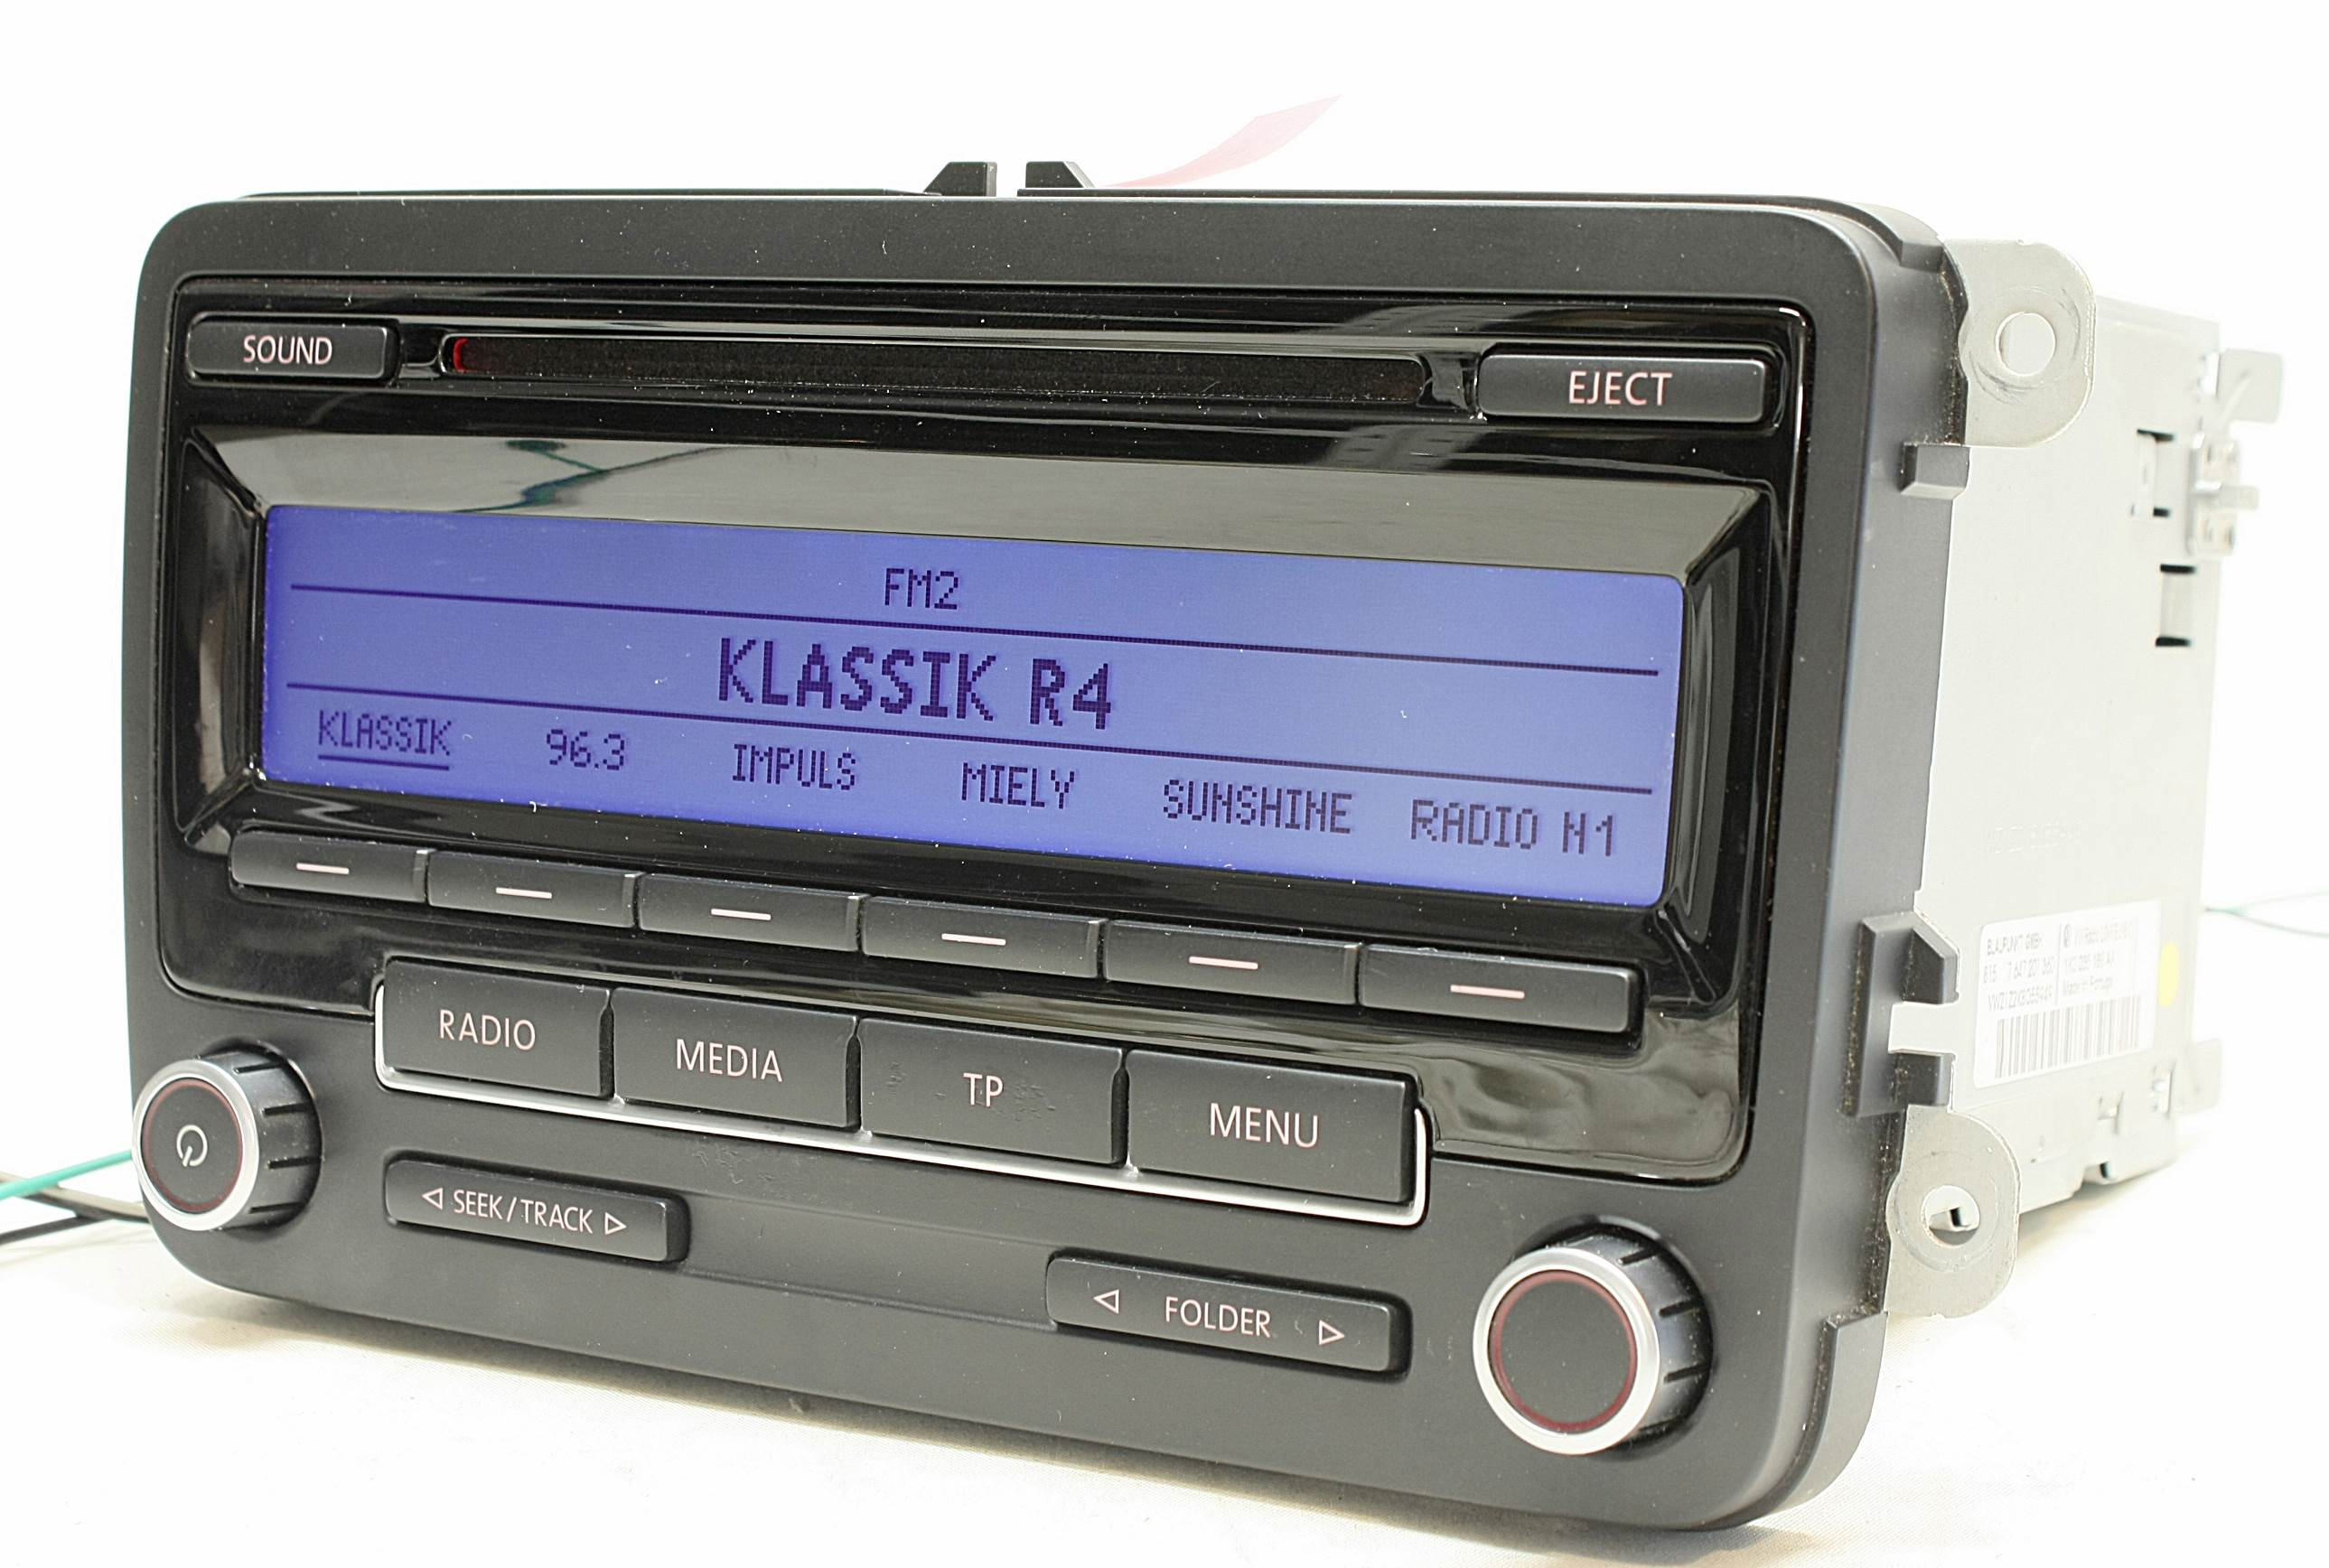 vw rcd 310 cd player mp3 autoradio ebay. Black Bedroom Furniture Sets. Home Design Ideas